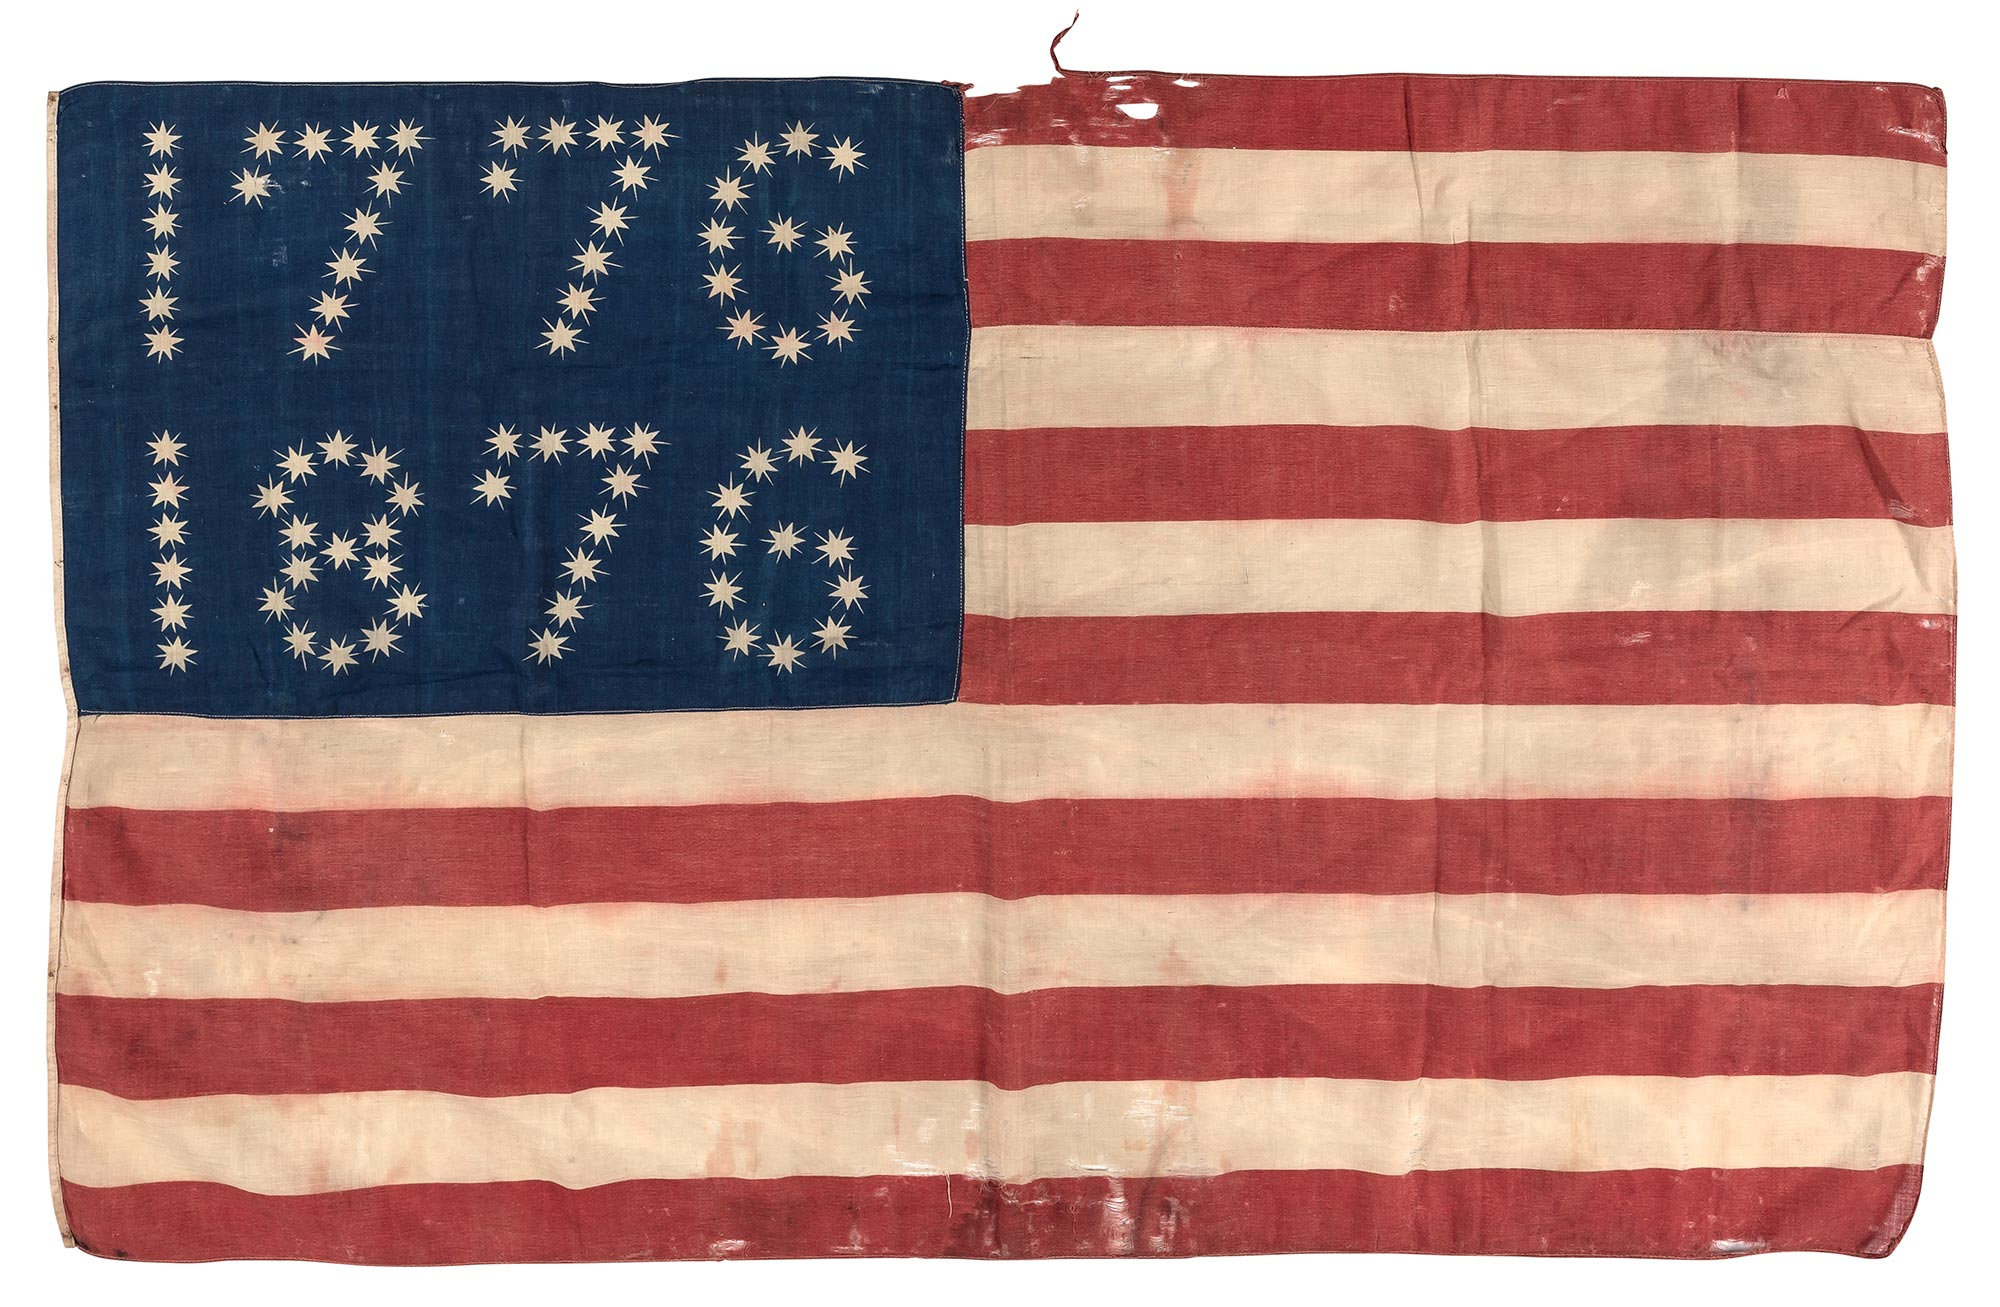 Lot image - [AMERICAN FLAG]  Centennial American parade flag with stars arranged in the 1776/1876 pattern.